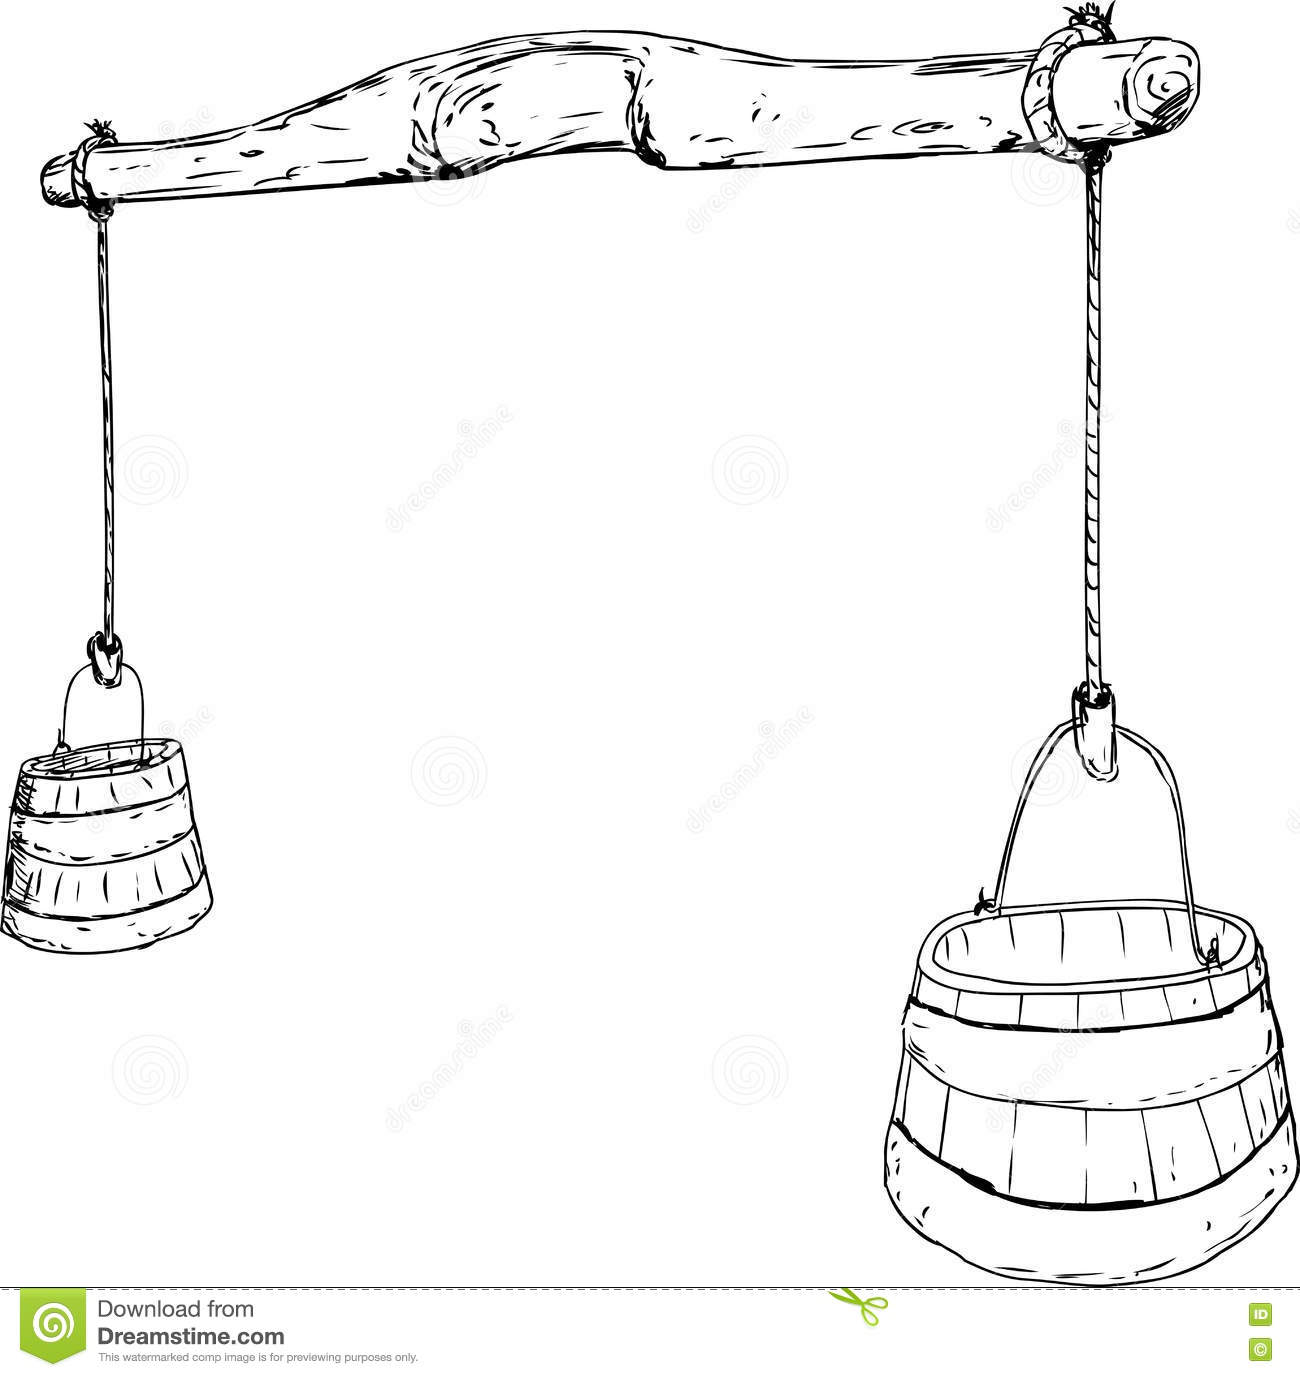 Outline Sketch Of 18th Century Yoke With Buckets Stock